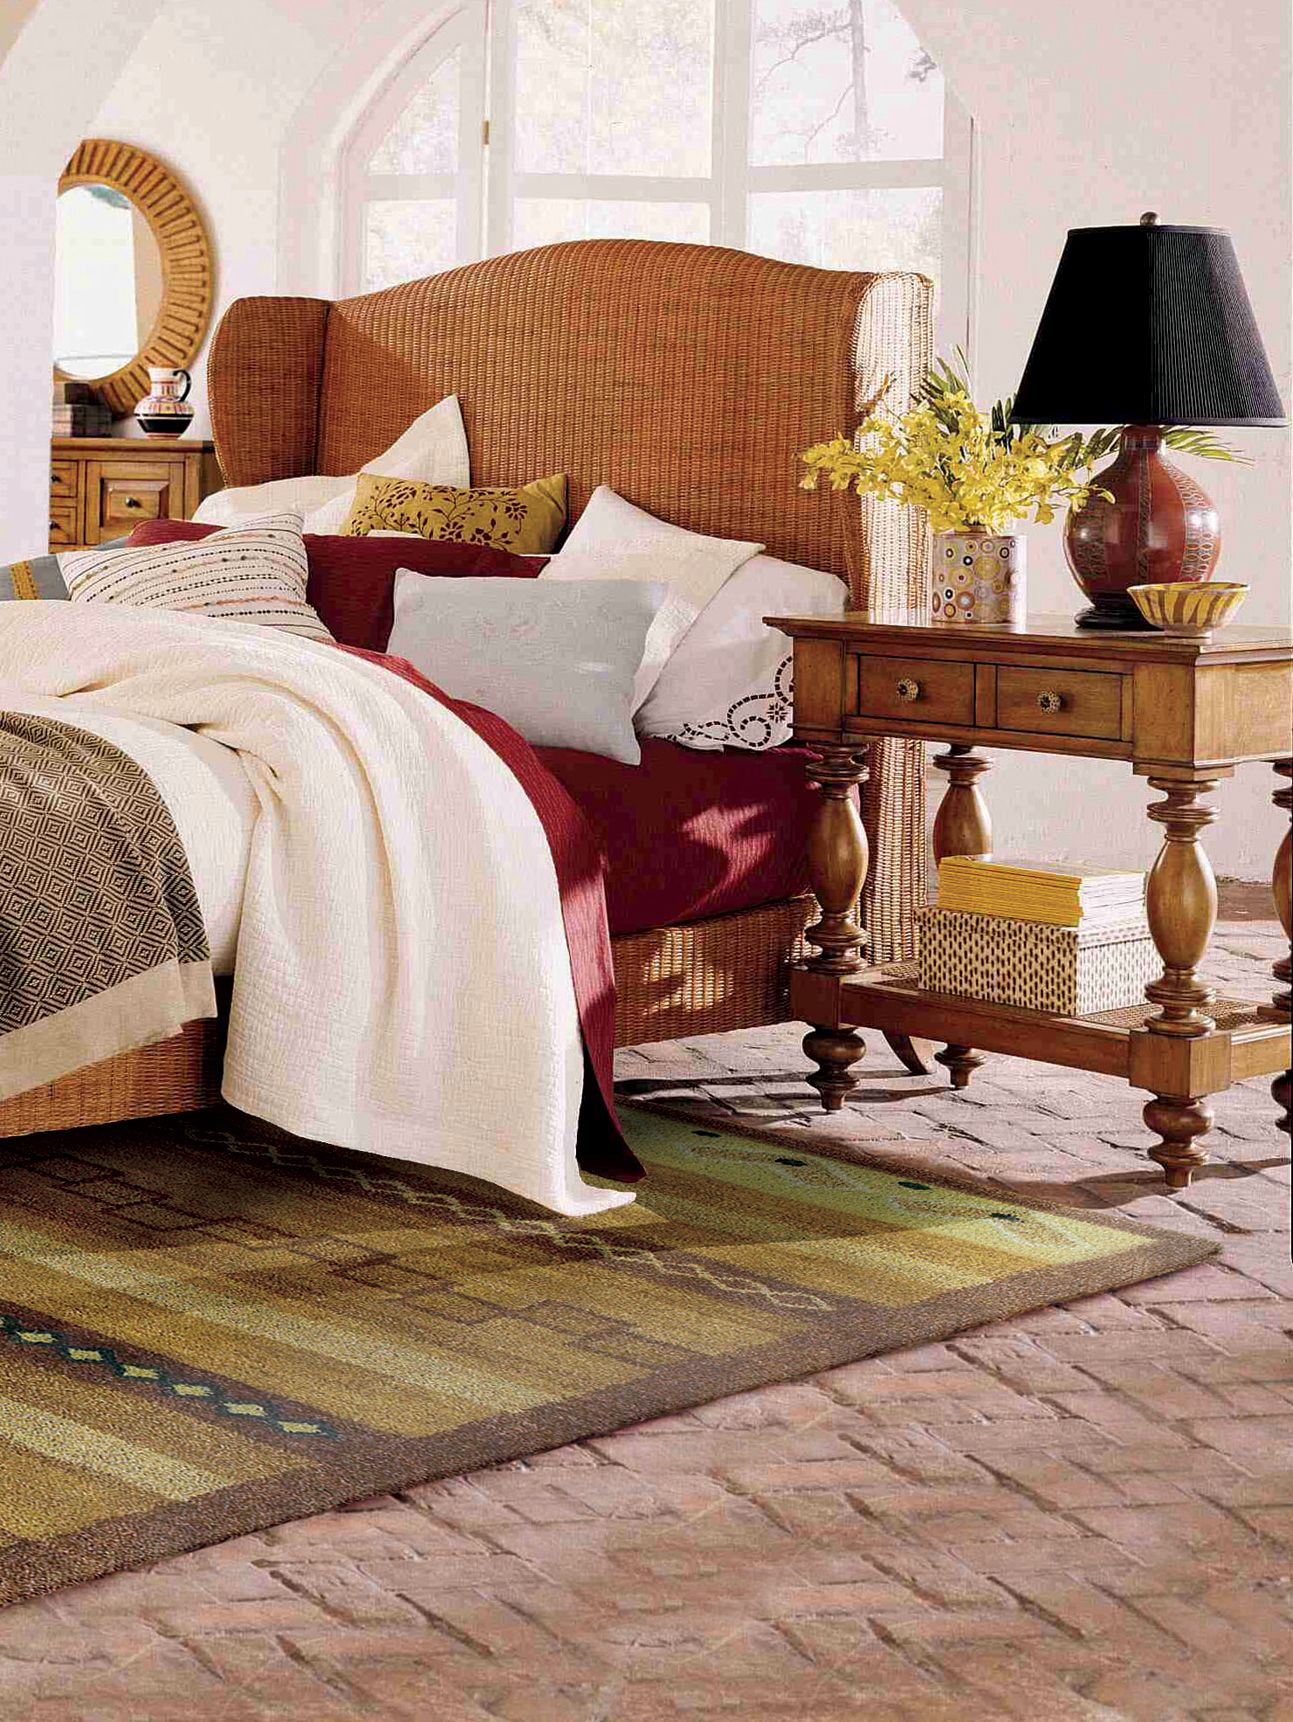 Layer your bedding for a feel. An area rug under